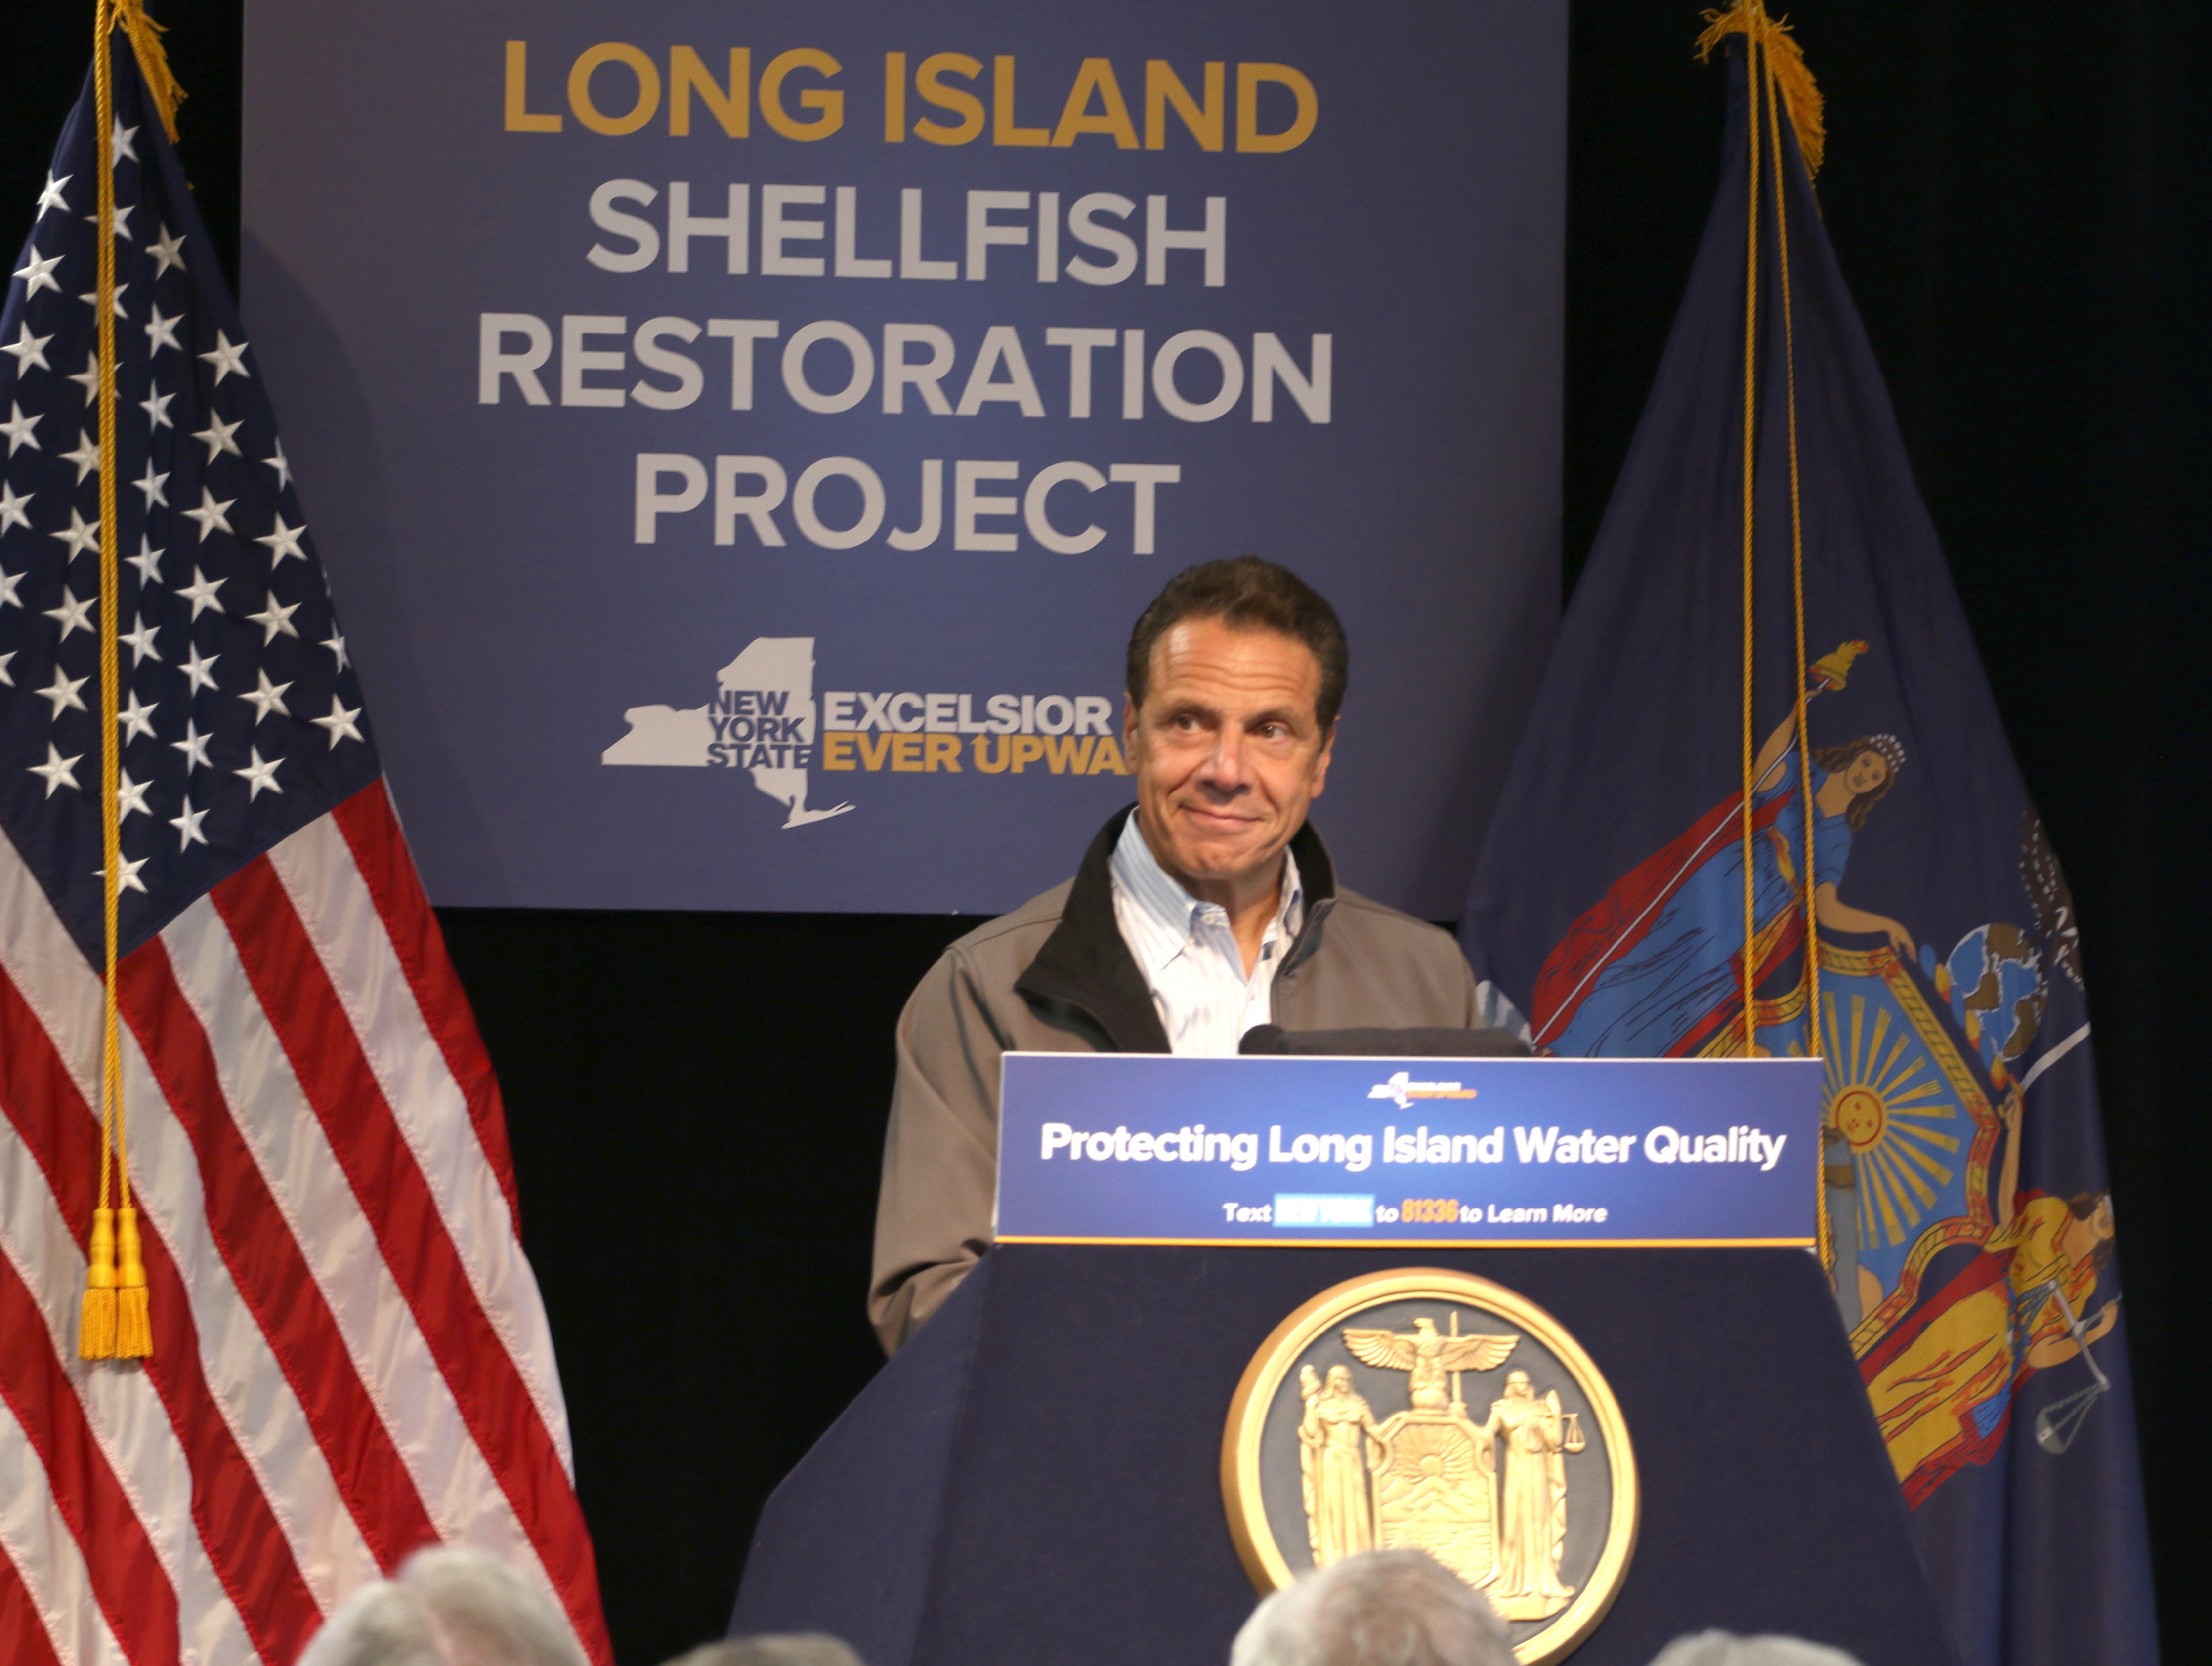 Gov_Cuomo_Press_Conf_Shellfish_Restoration_Project_9.06.17-SPJ.jpg